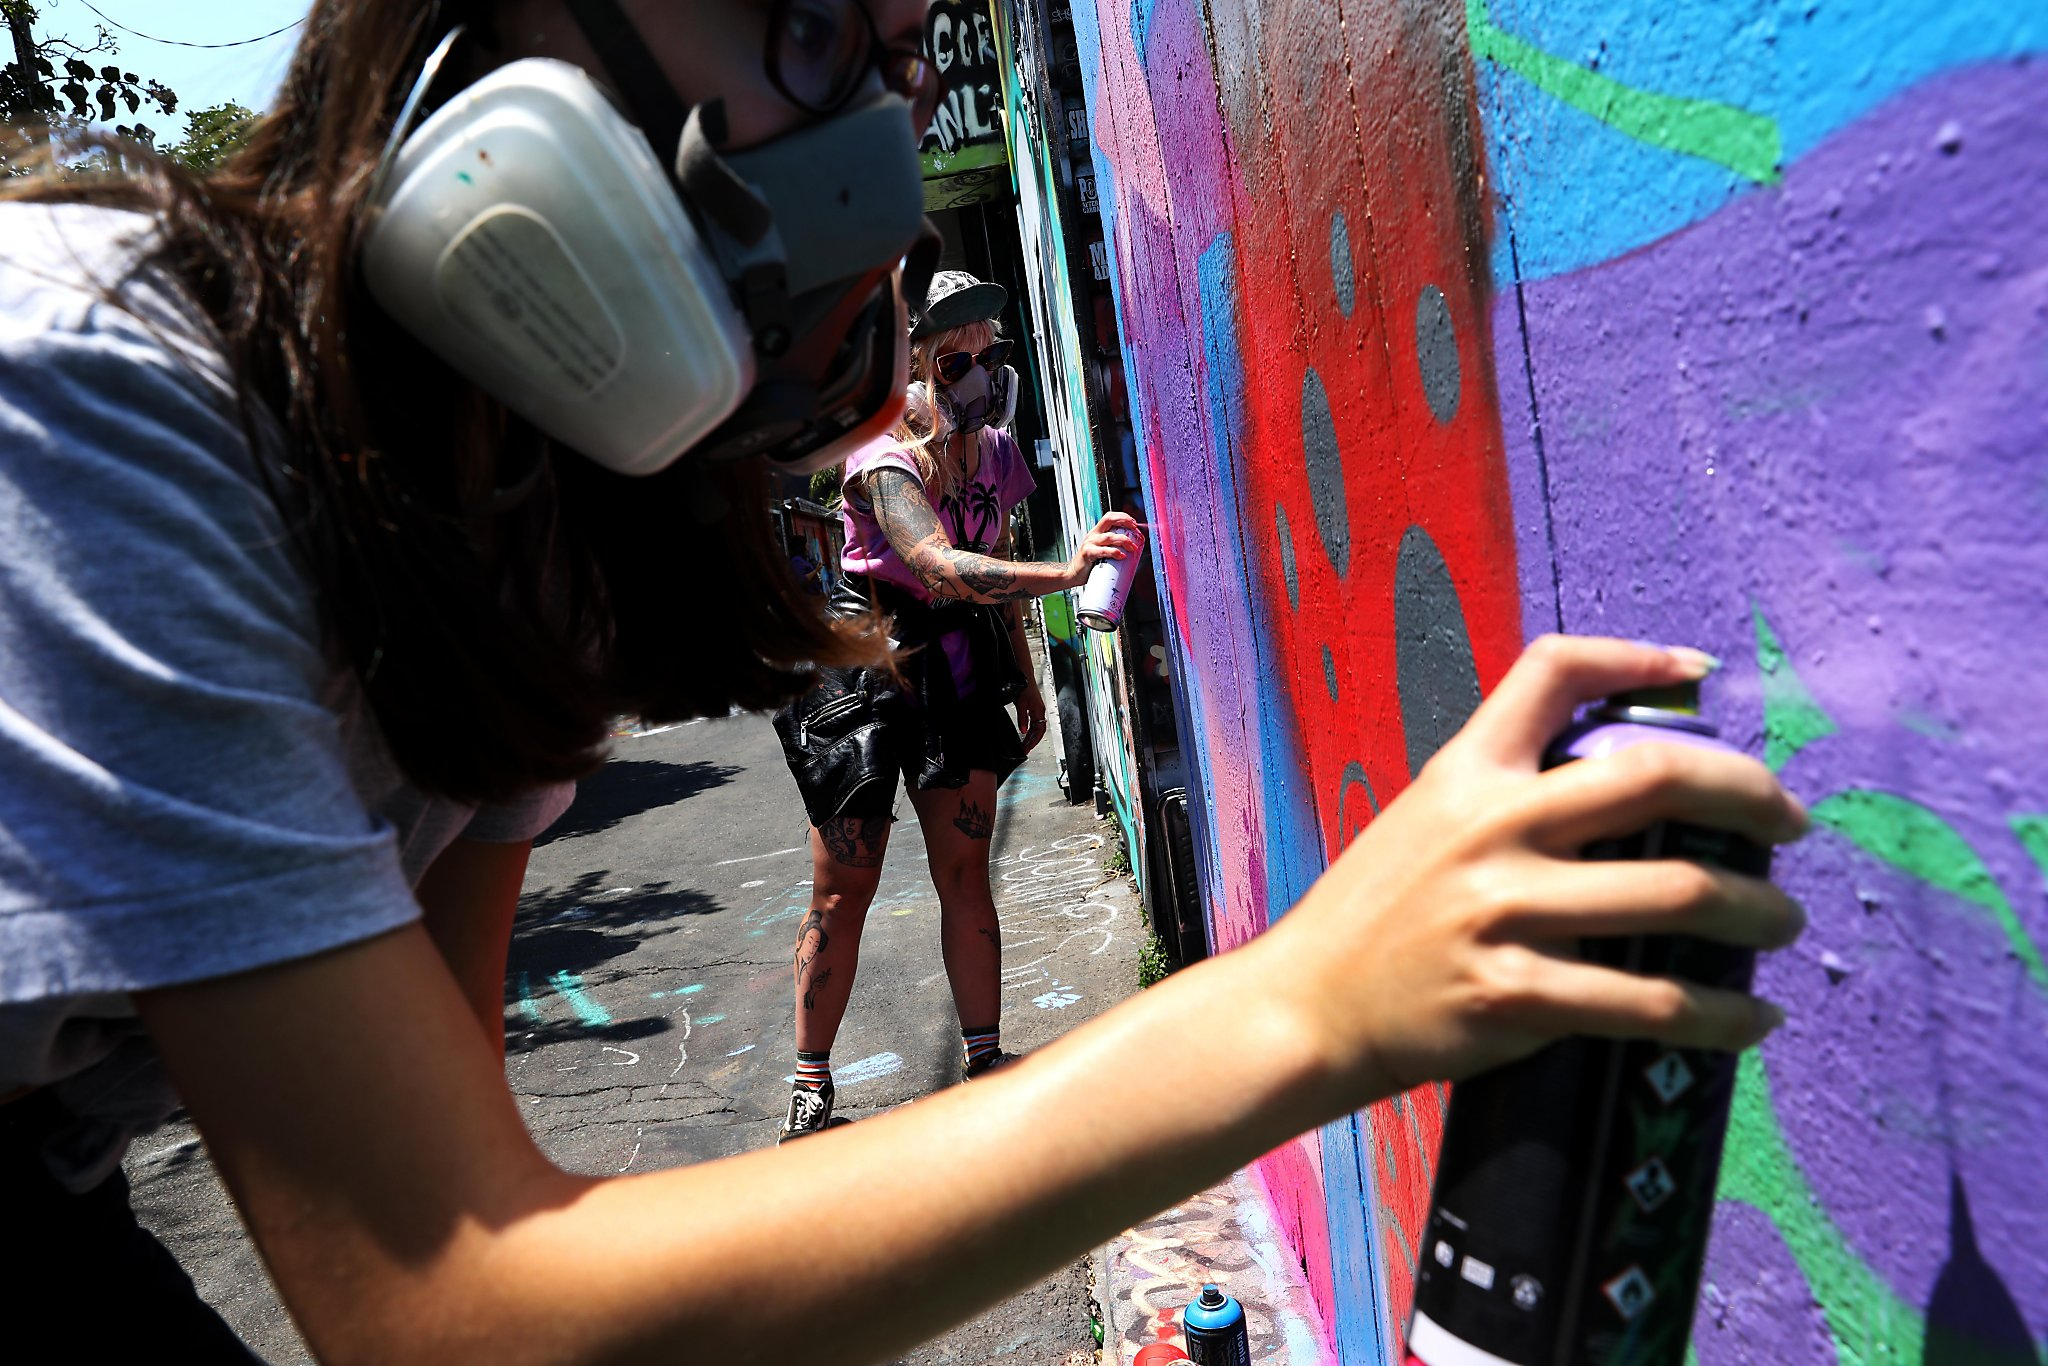 Graffiti camp for girls teaches how to break into boys club of street art